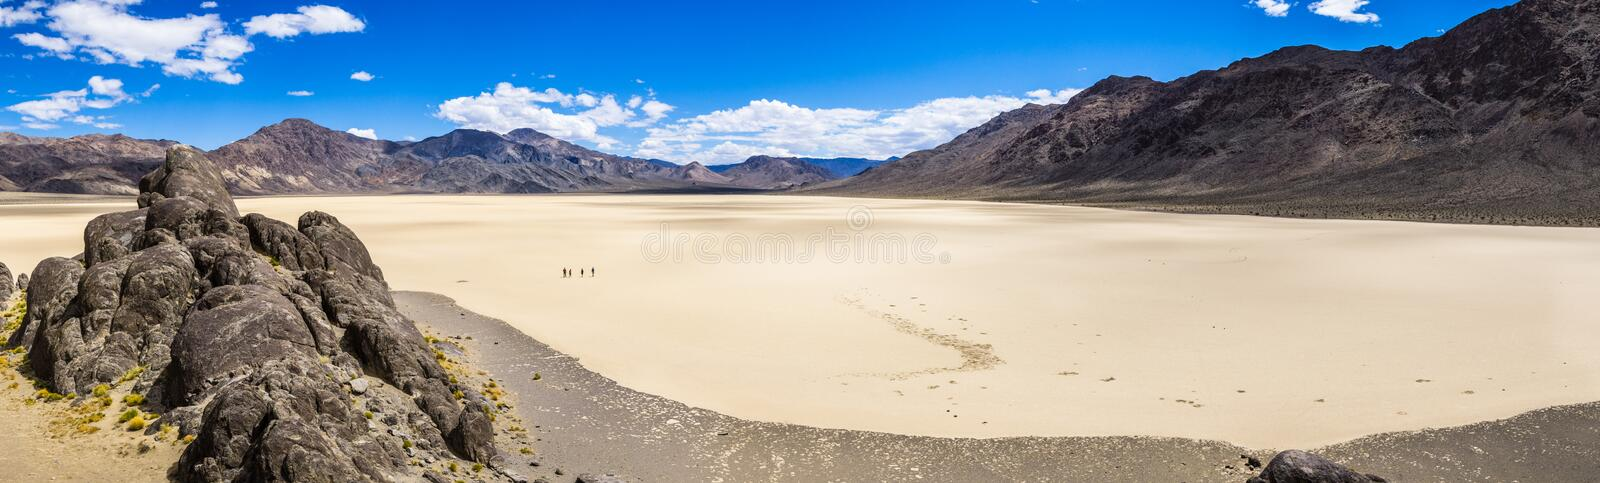 Panoramic view of the Racetrack Playa taken from the Grandstand; Death Valley National Park, California stock photo